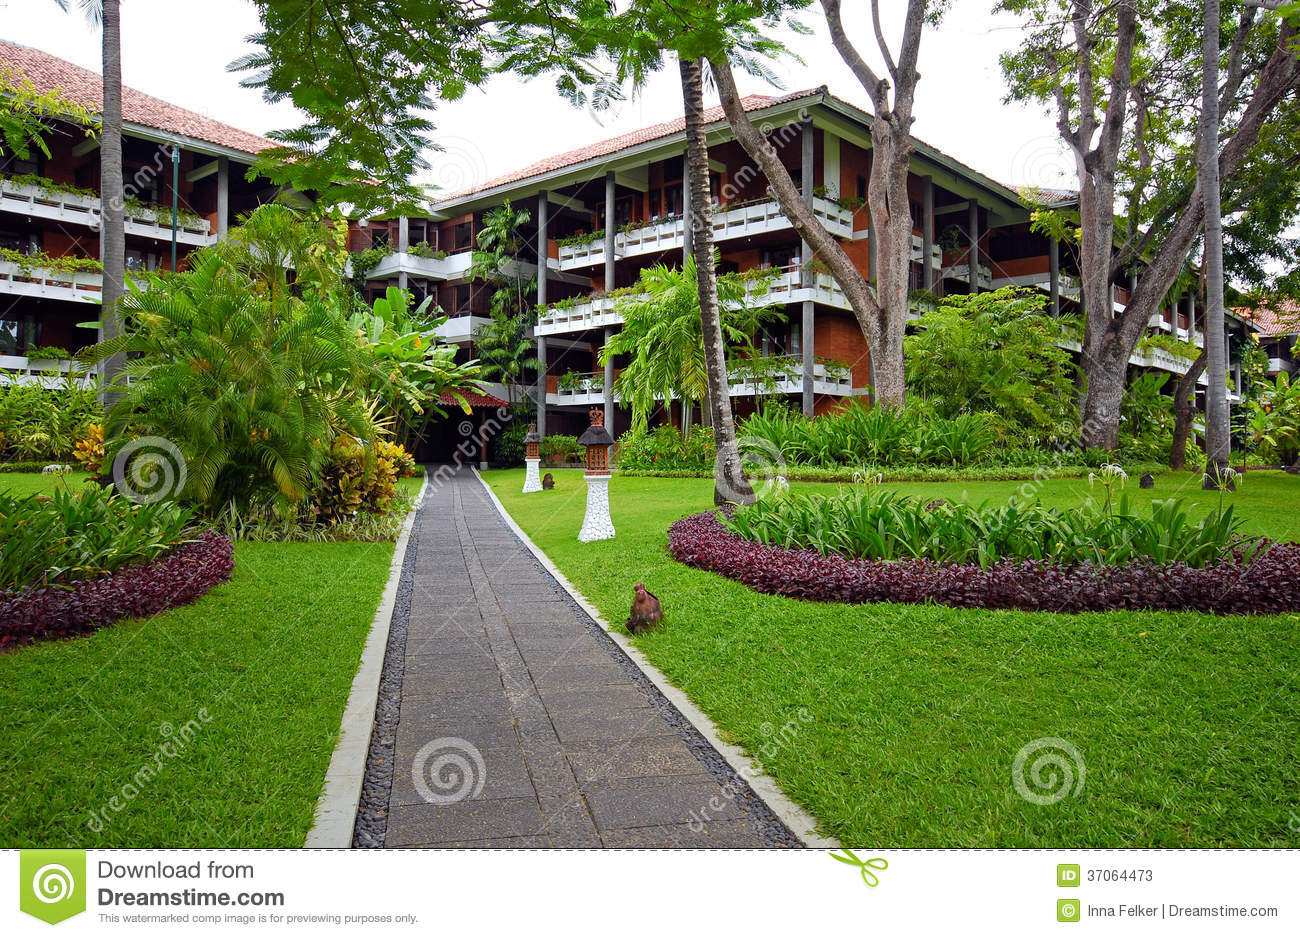 Luxury Hotel Resort With Tropical Garden In Bali Indonesia Stock Photos Image 37064473